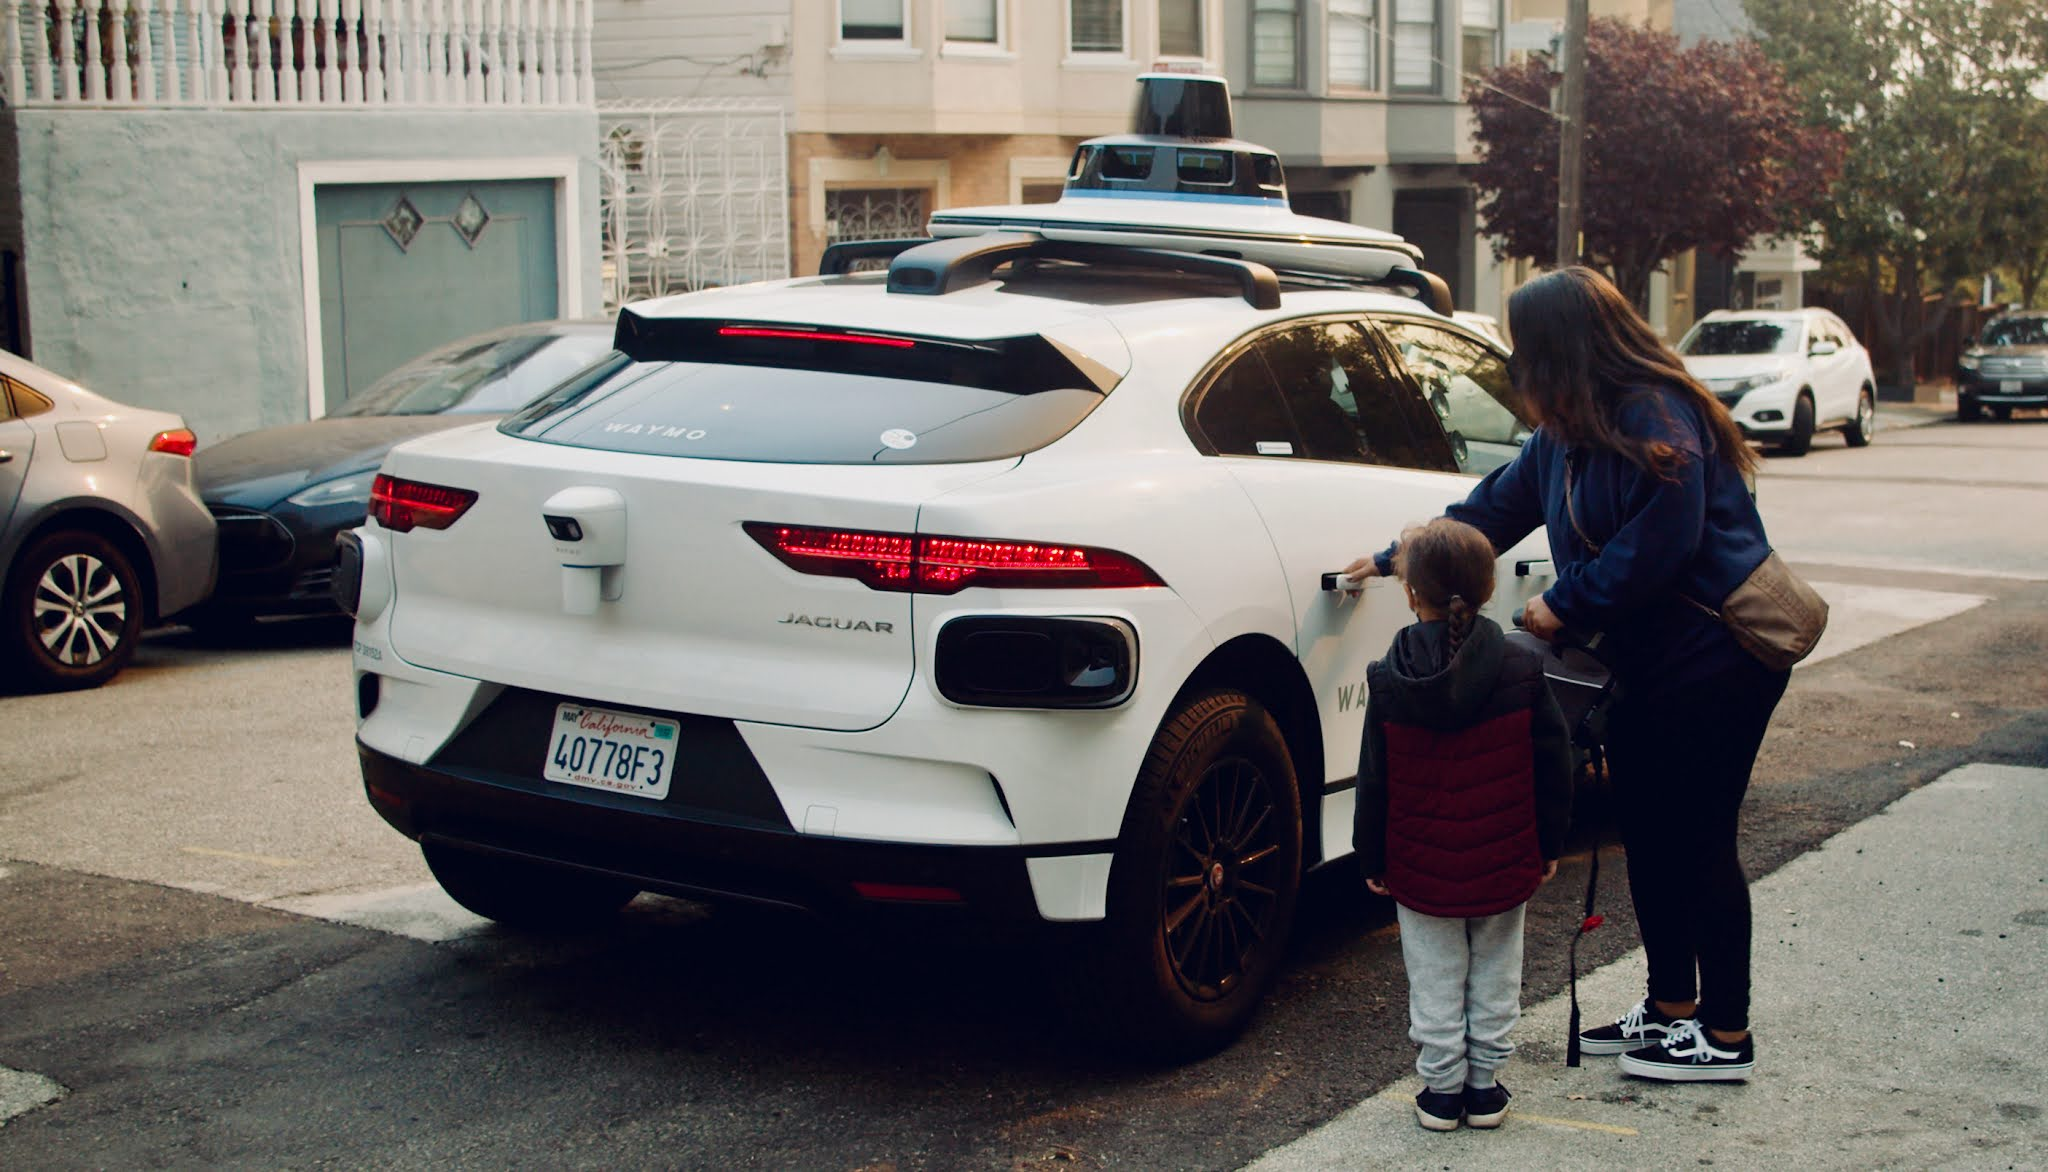 The first rule of Waymo driverless car club is you don't talk about Waymo driverless car club